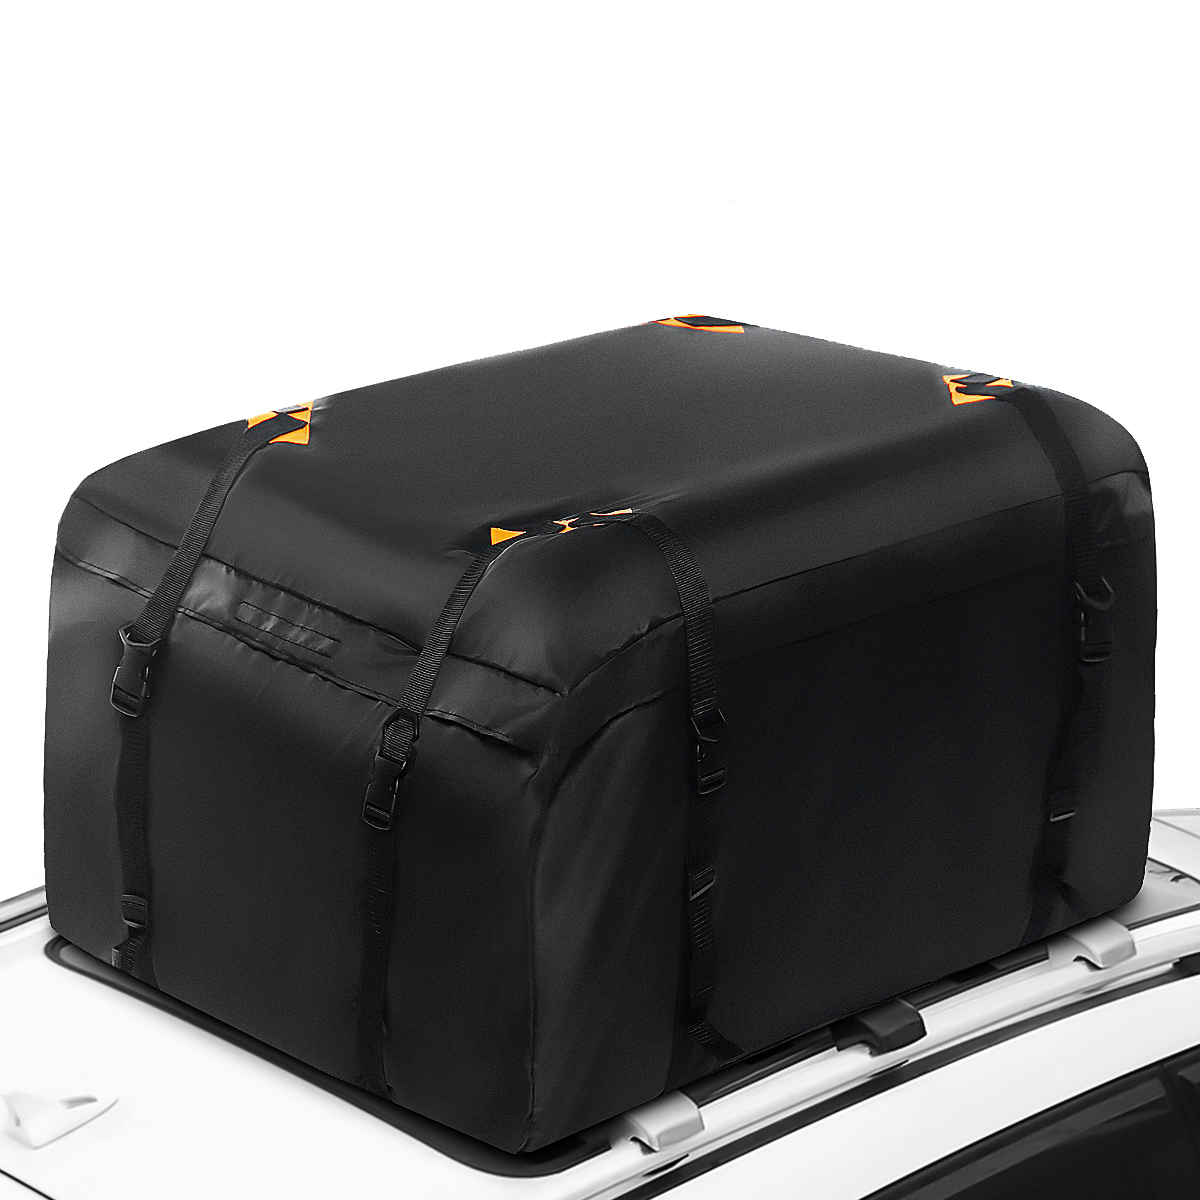 425L Universal Car Roof Top Cargo Bag Waterproof Luggage Carrier Basket Travel Storage Rack